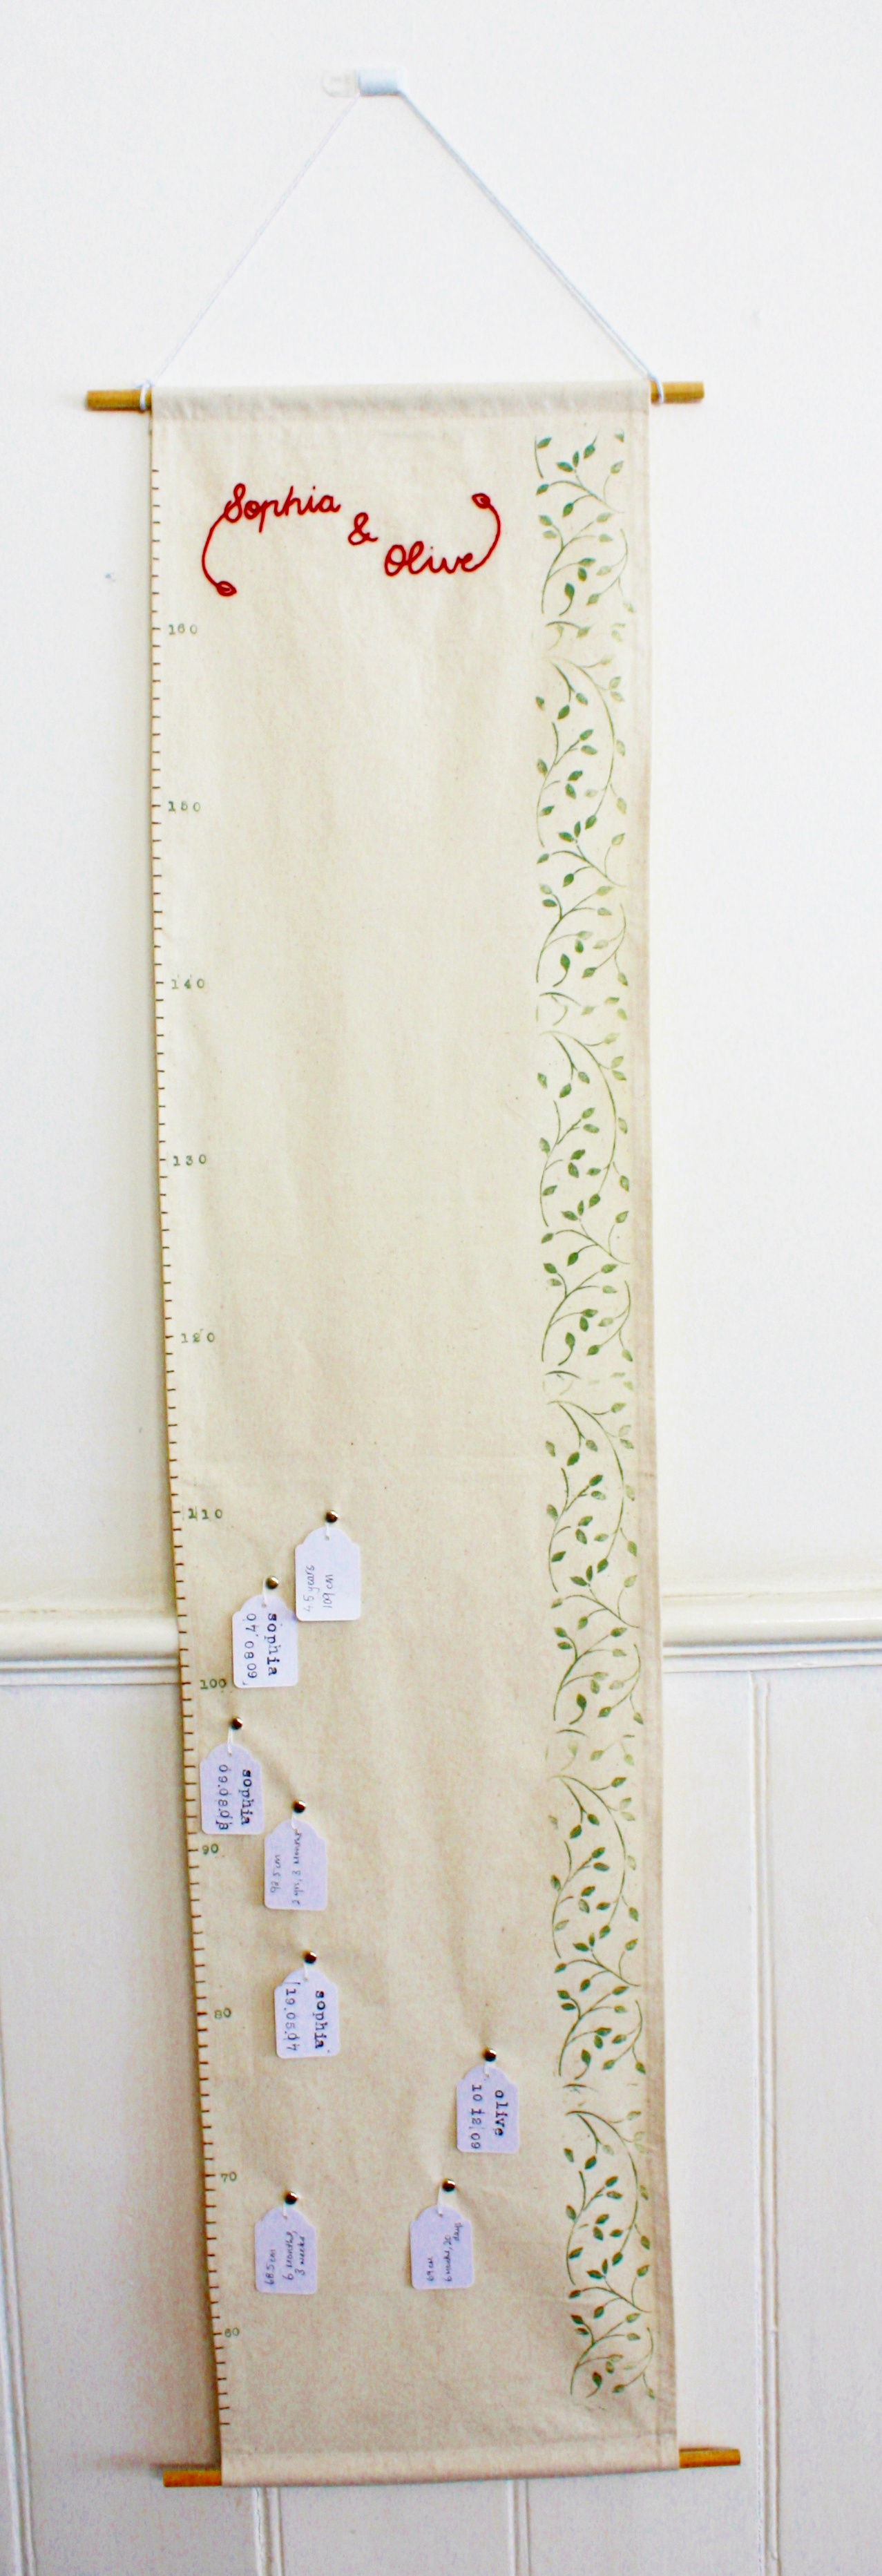 DIY fabric growth chart with tags on decorative nails